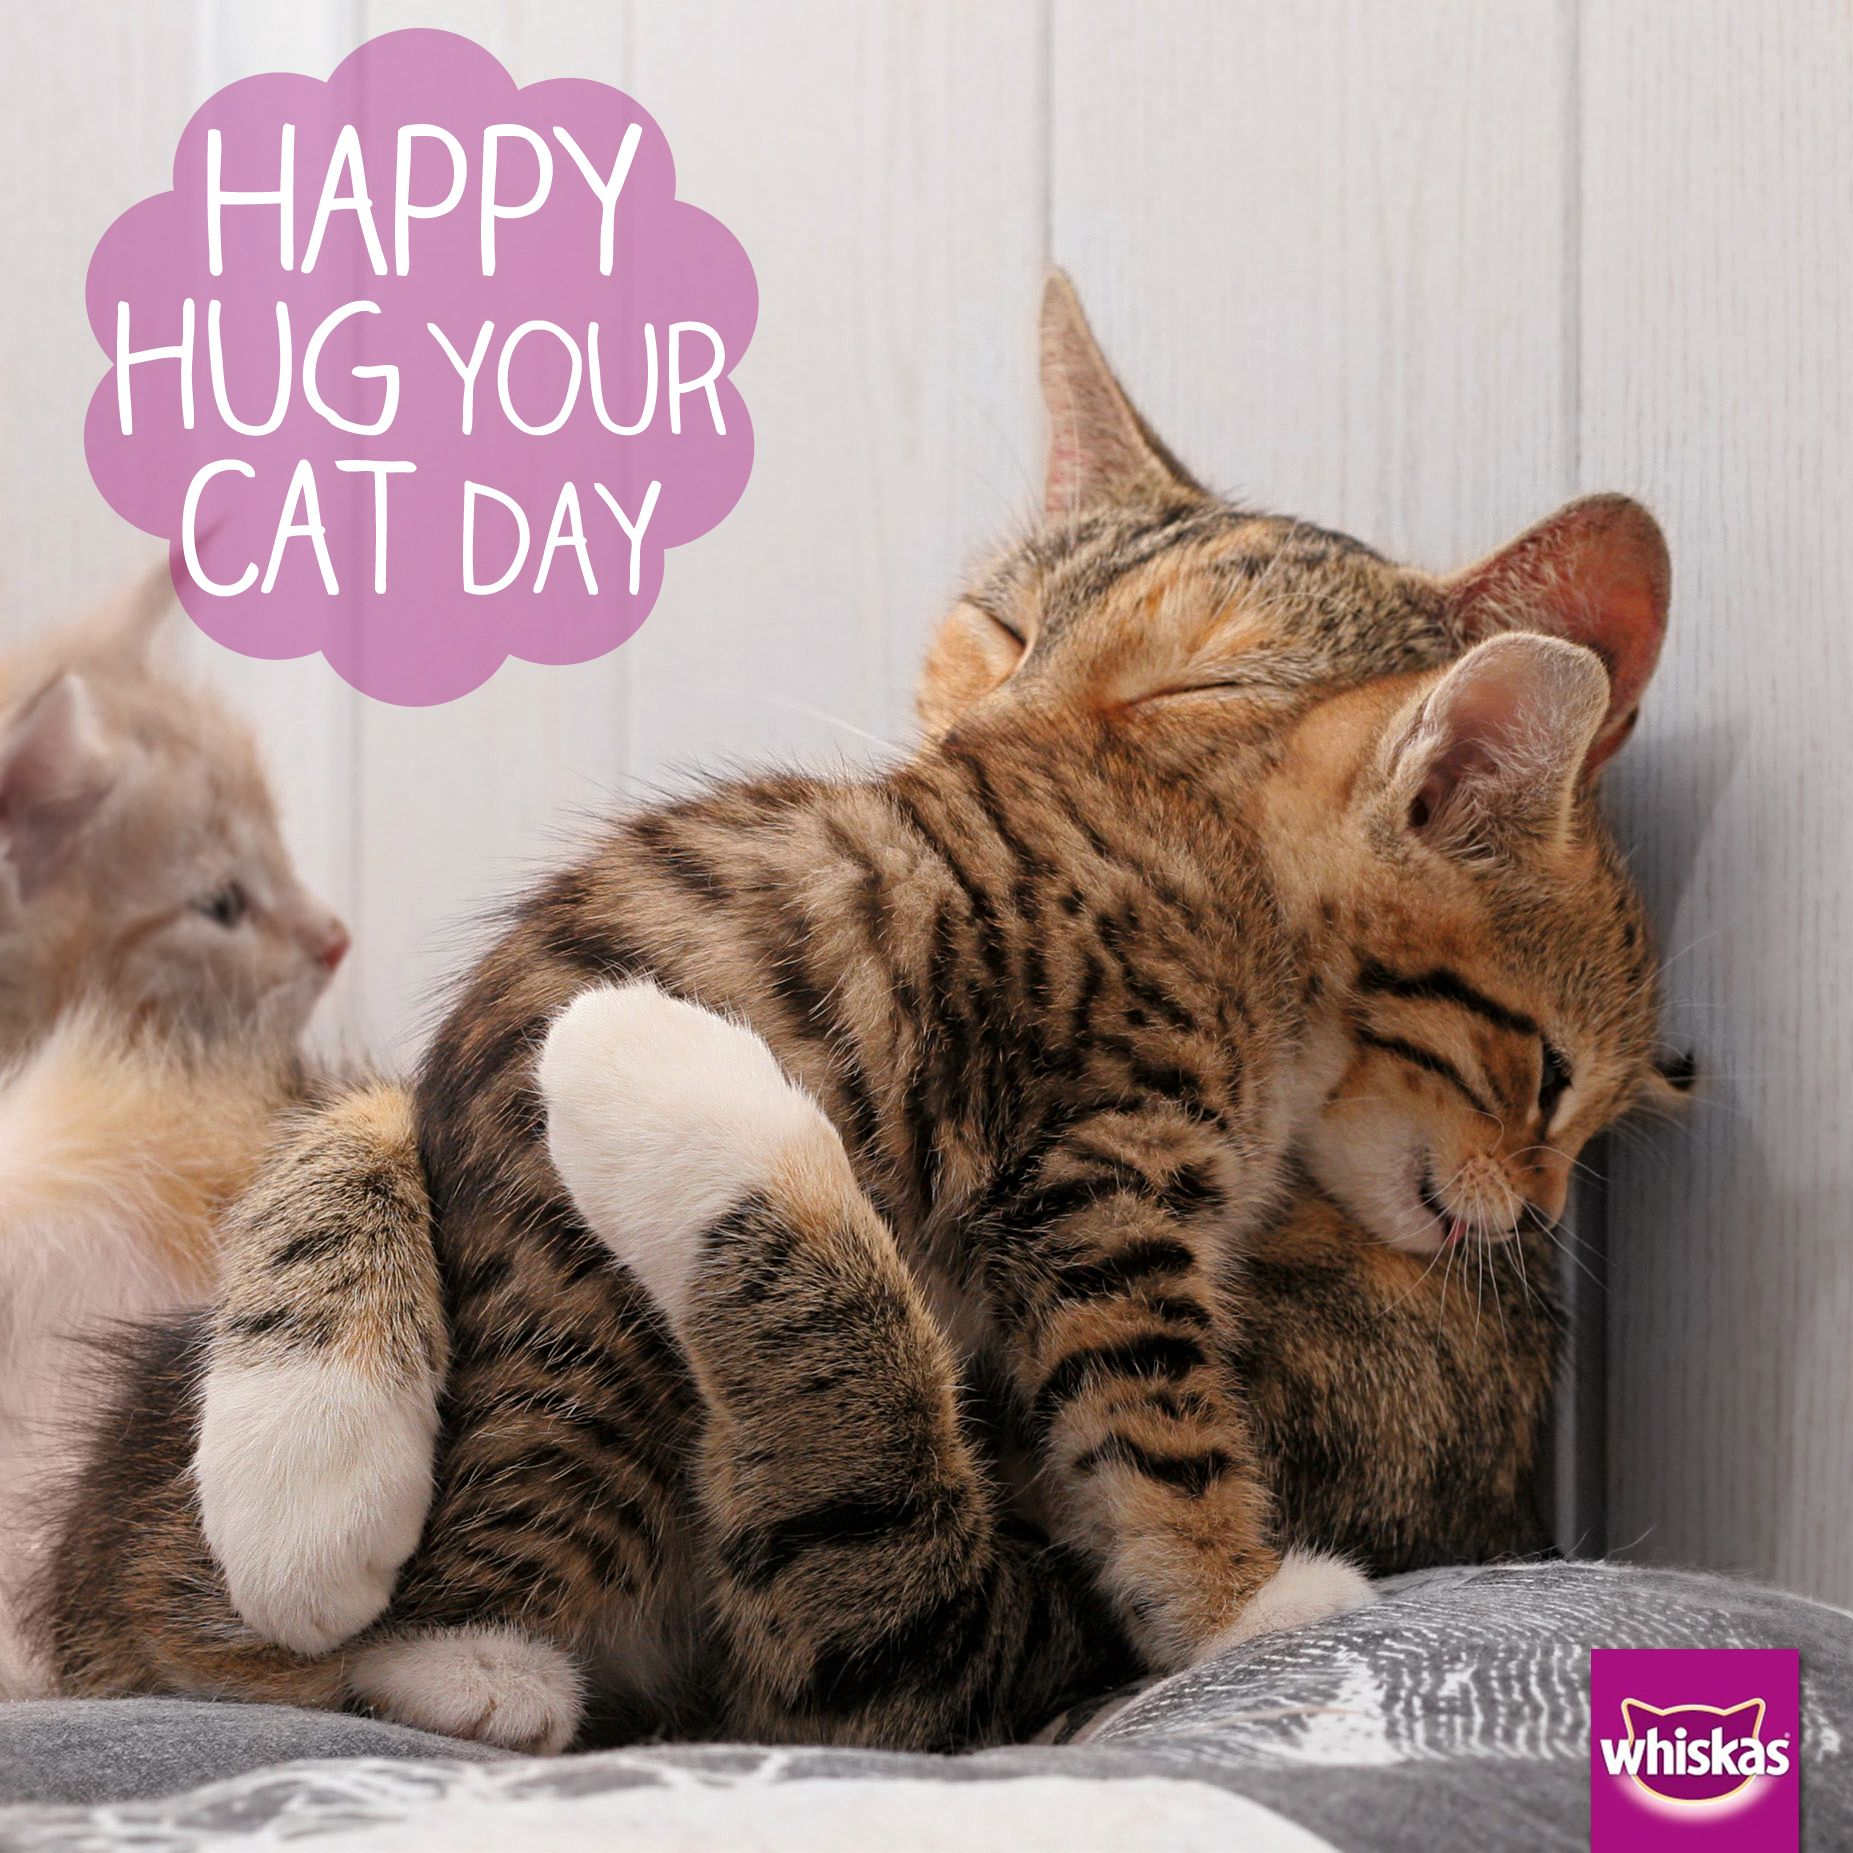 Happy Hug Your Cat Day Sounds like a purrfect excuse for a few